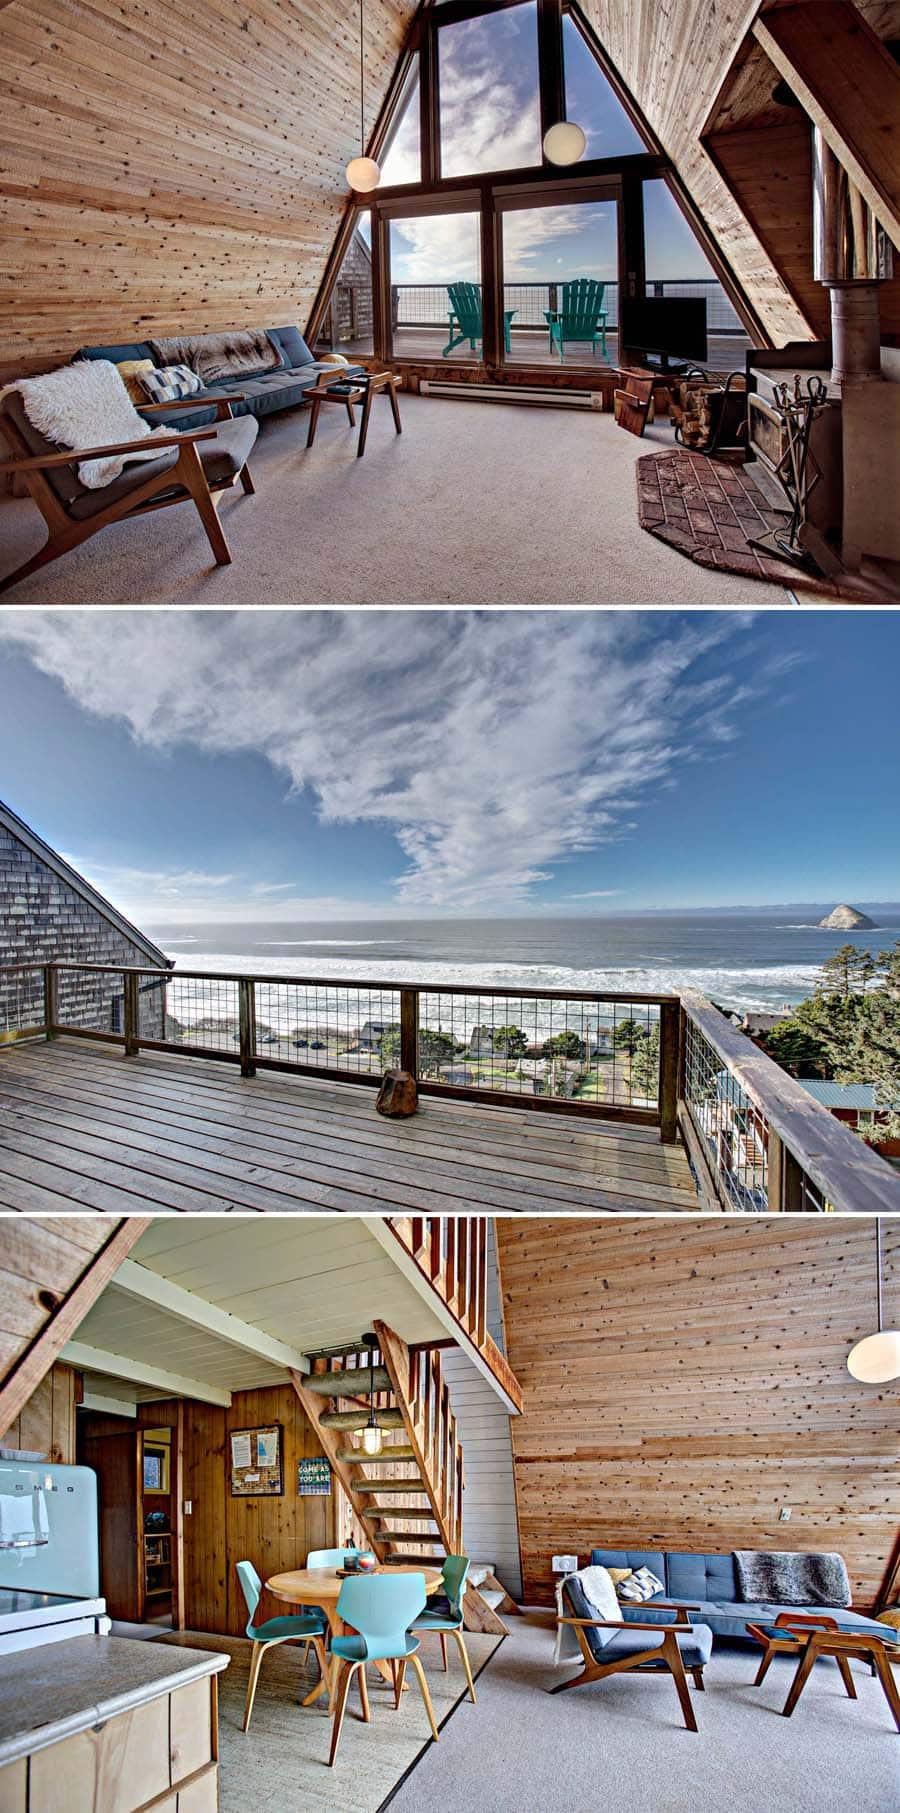 Oceanfront A-frame Airbnb home on the coast of Oregon